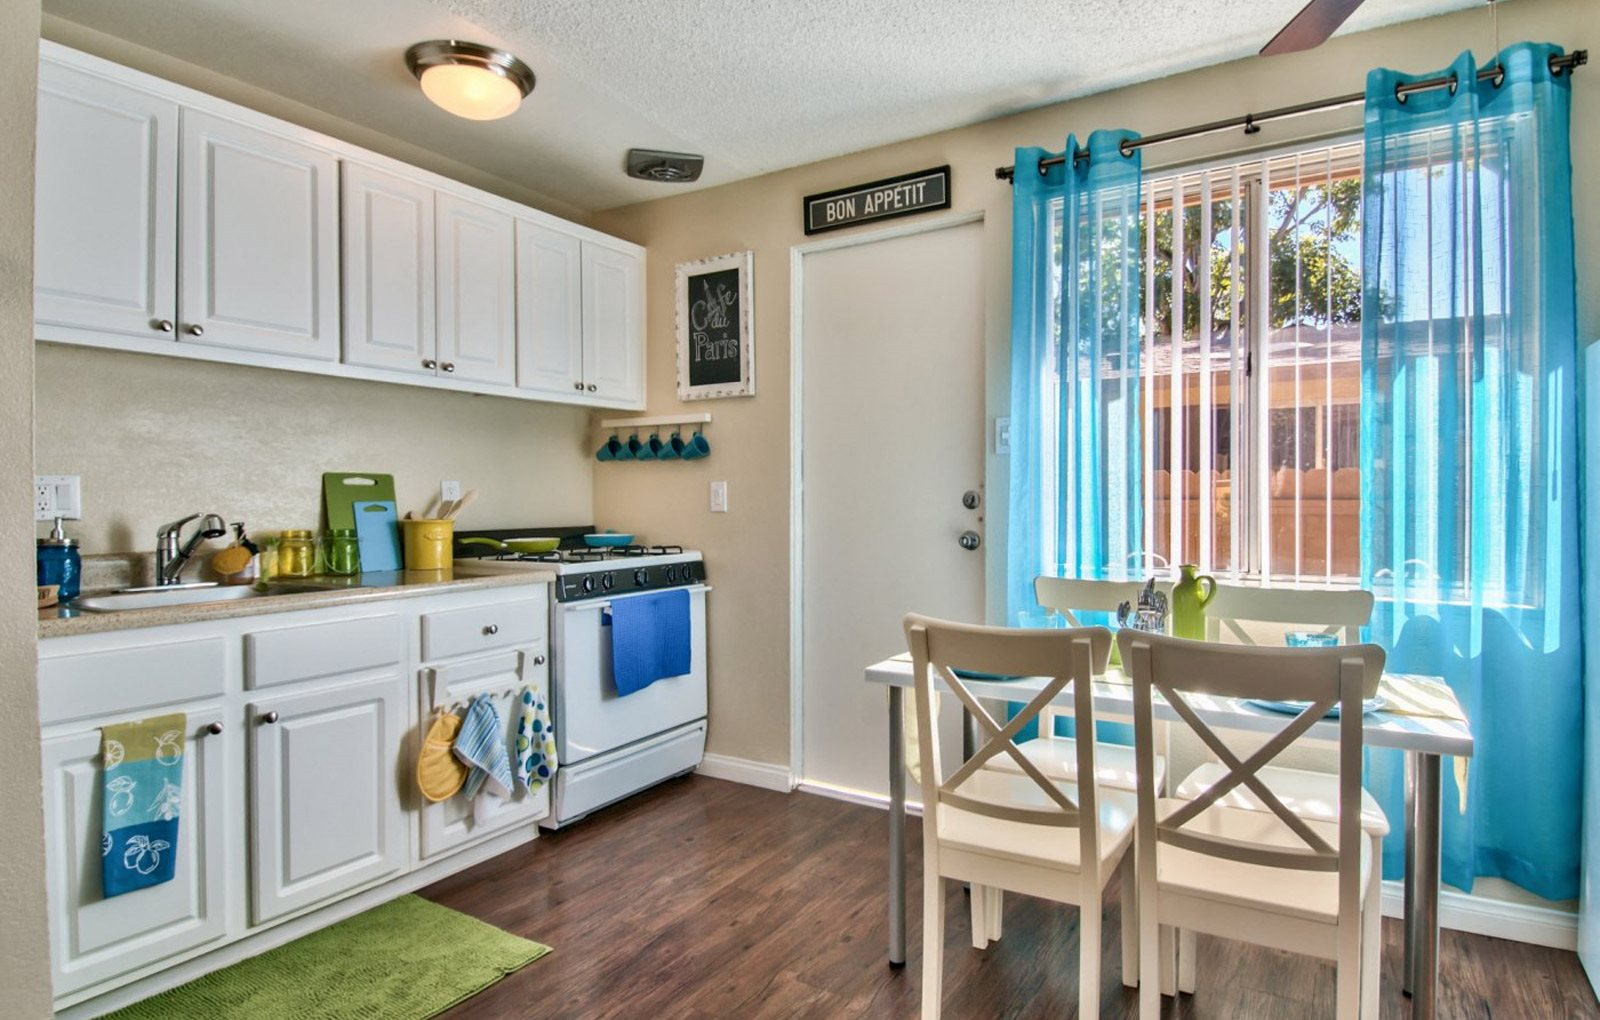 Full KItchen and Dining Ontario, Ca Apartments l The Casitas Apartments